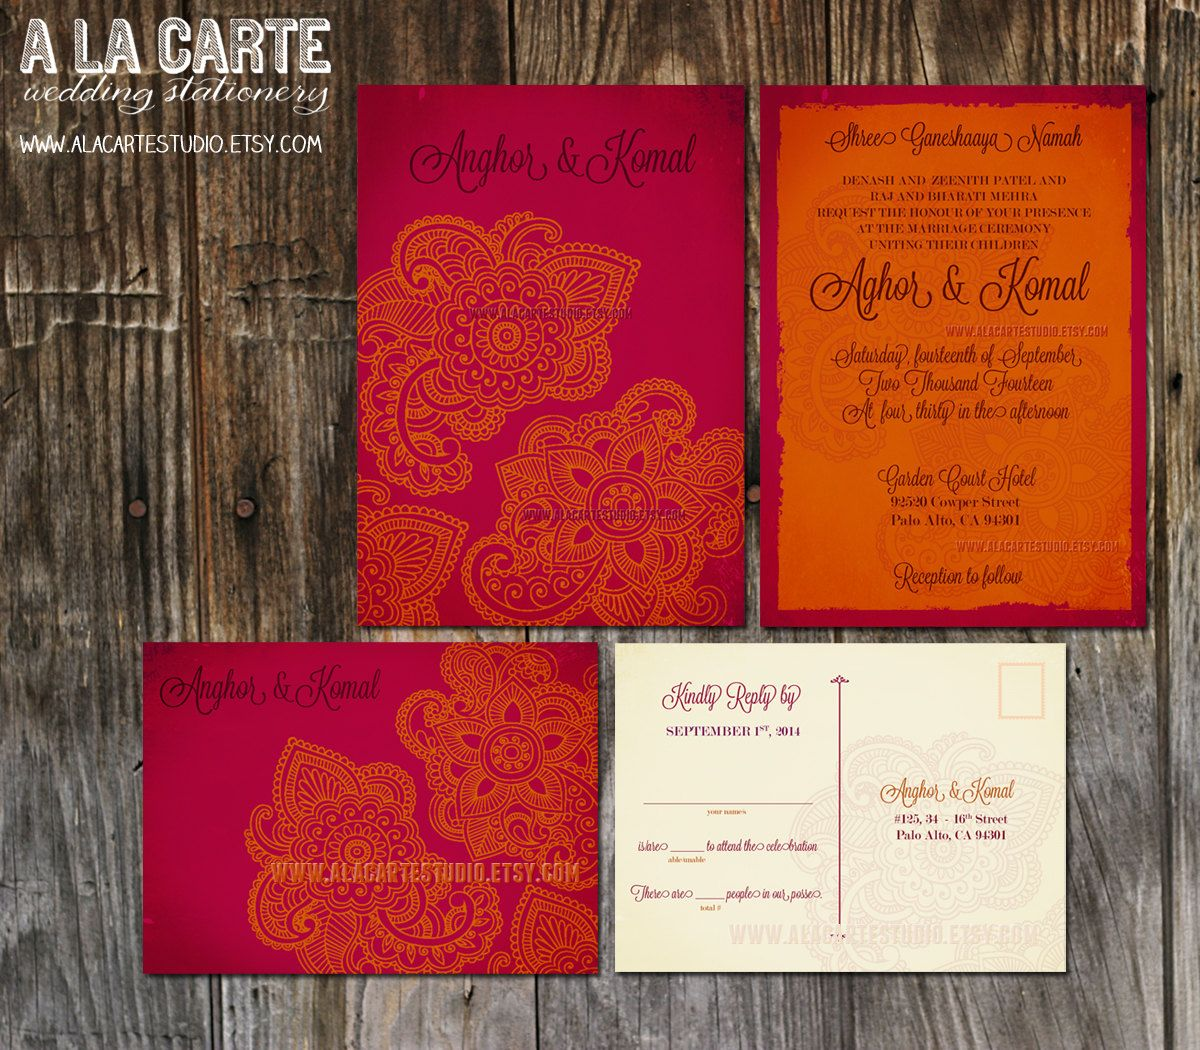 wedding card invitation cards online%0A Indian Style Wedding Invitation and RSVP cards  for my supplemental Indian  wedding